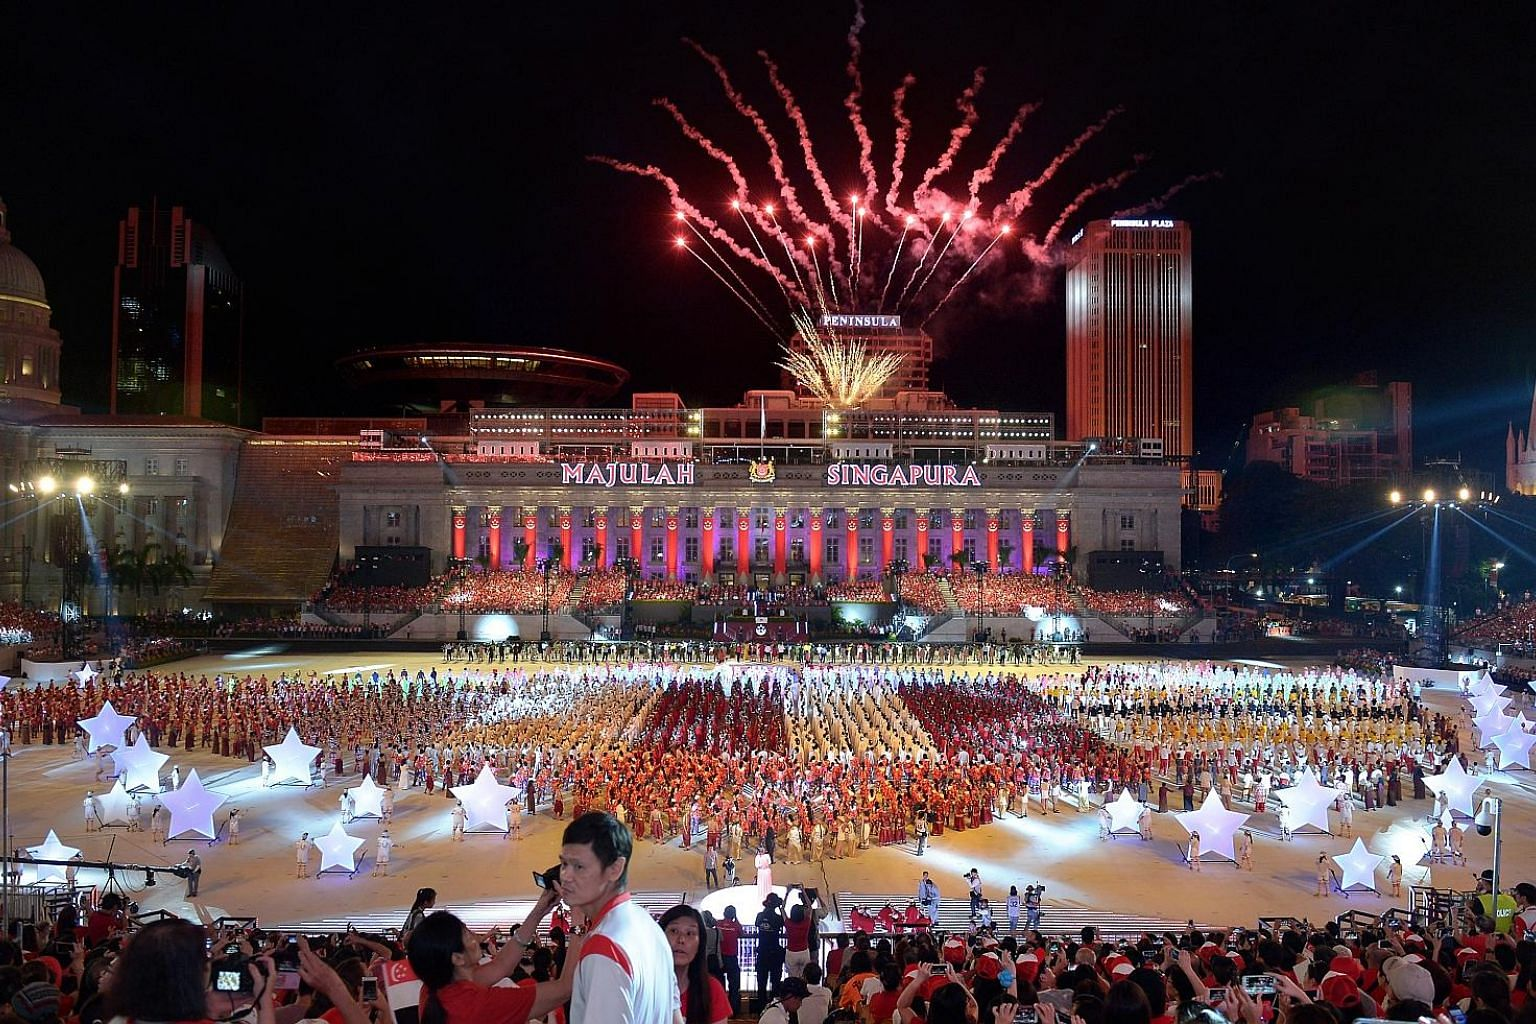 In 2015, the National Day Parade made a return to the Padang when Singapore marked its 50th year. Yesterday, Defence Minister Ng Eng Hen said next year's parade will be another special one, as it will reflect how far Singapore has come 200 years afte